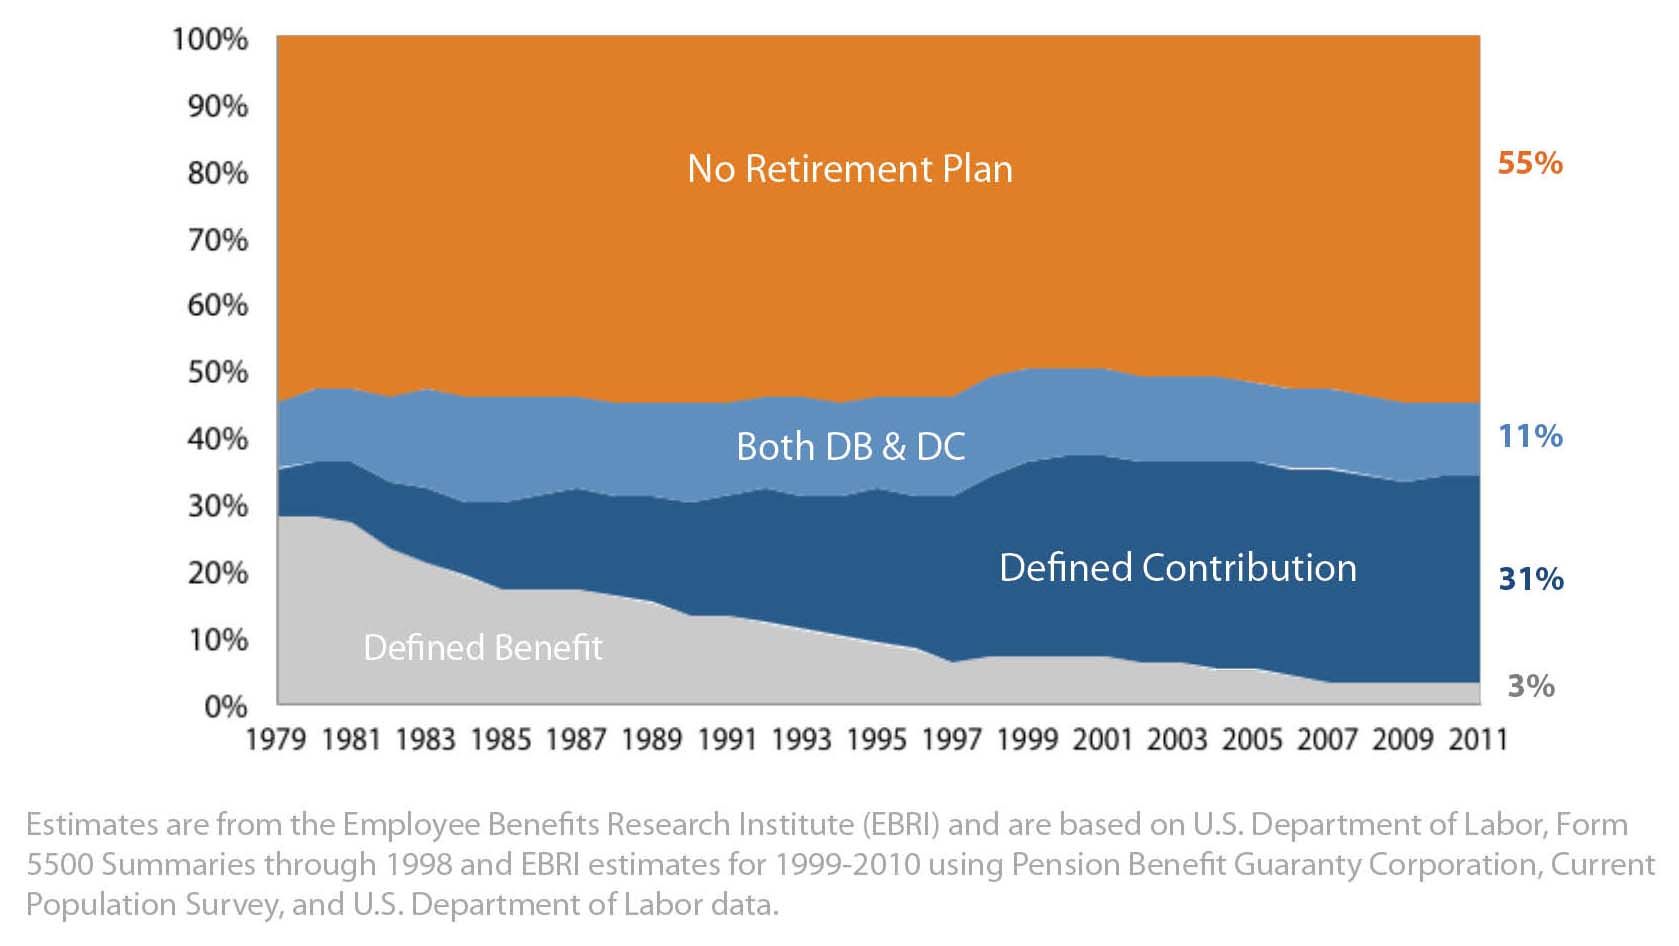 Private Sector Workers Participating in an Employment Based Retirement Plan, By Type, Among All Workers 1979-2011